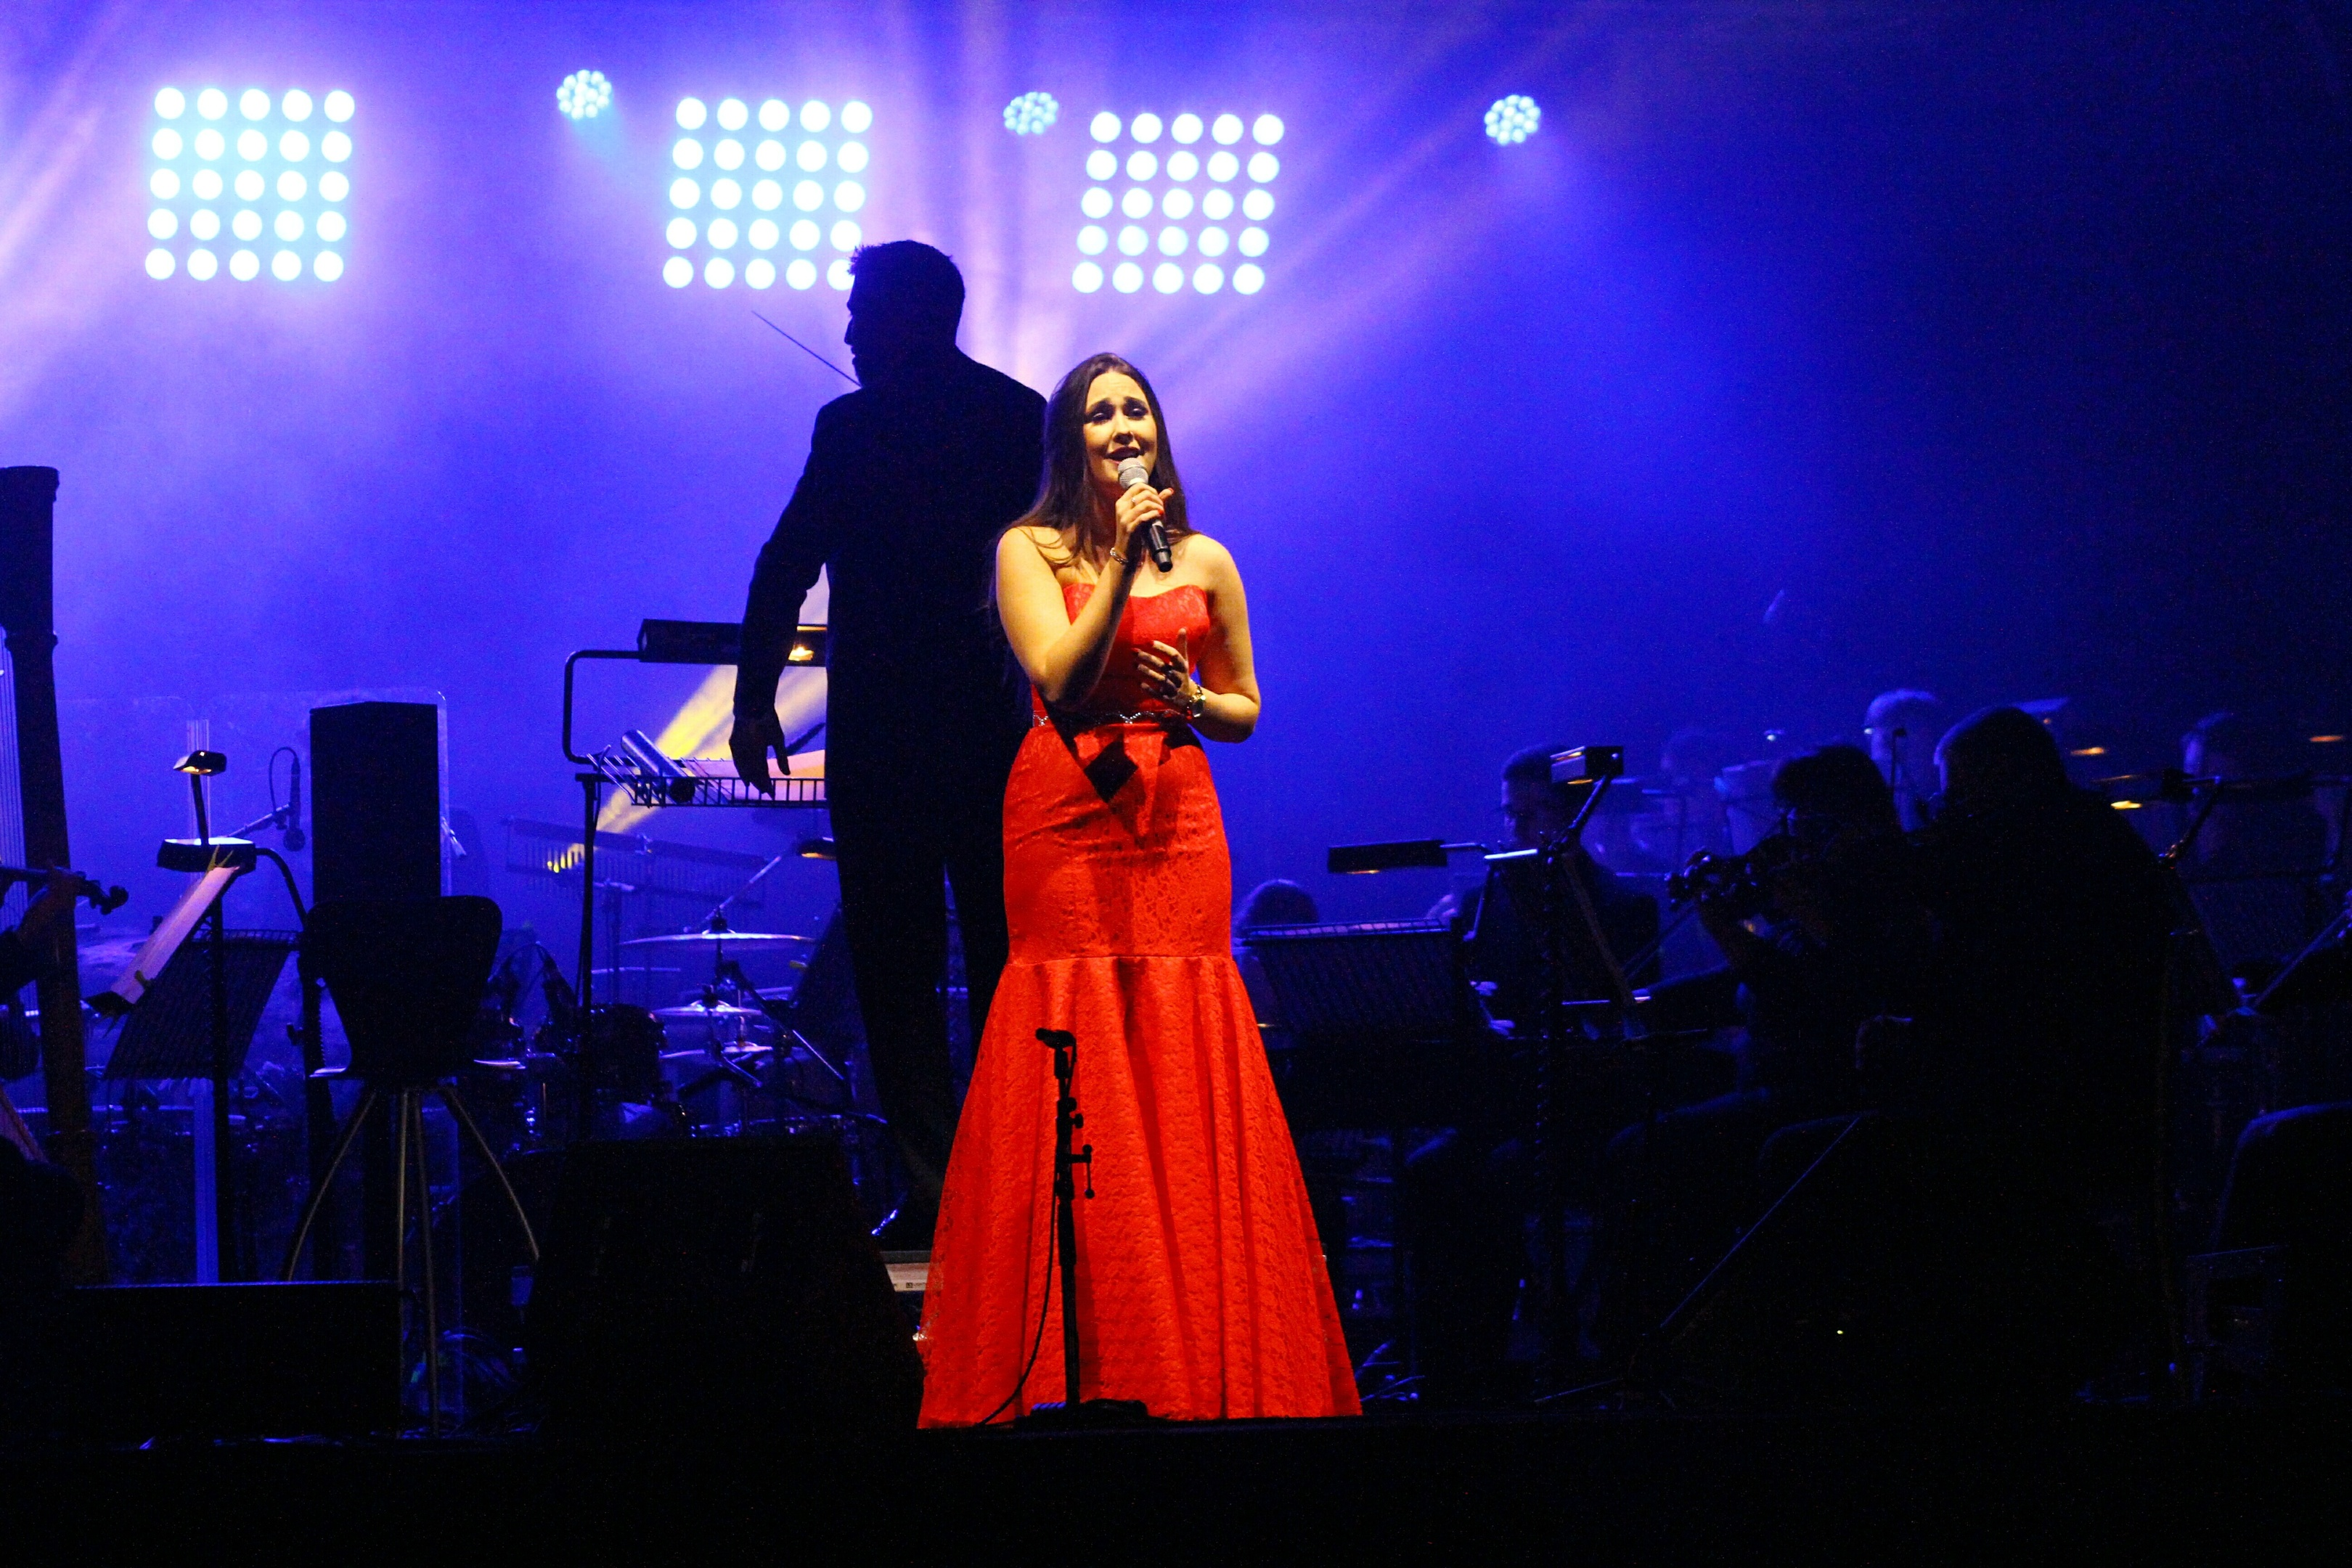 Courier competition winner Zoe Heggie thrilled the Glamis Prom audience with her singing.